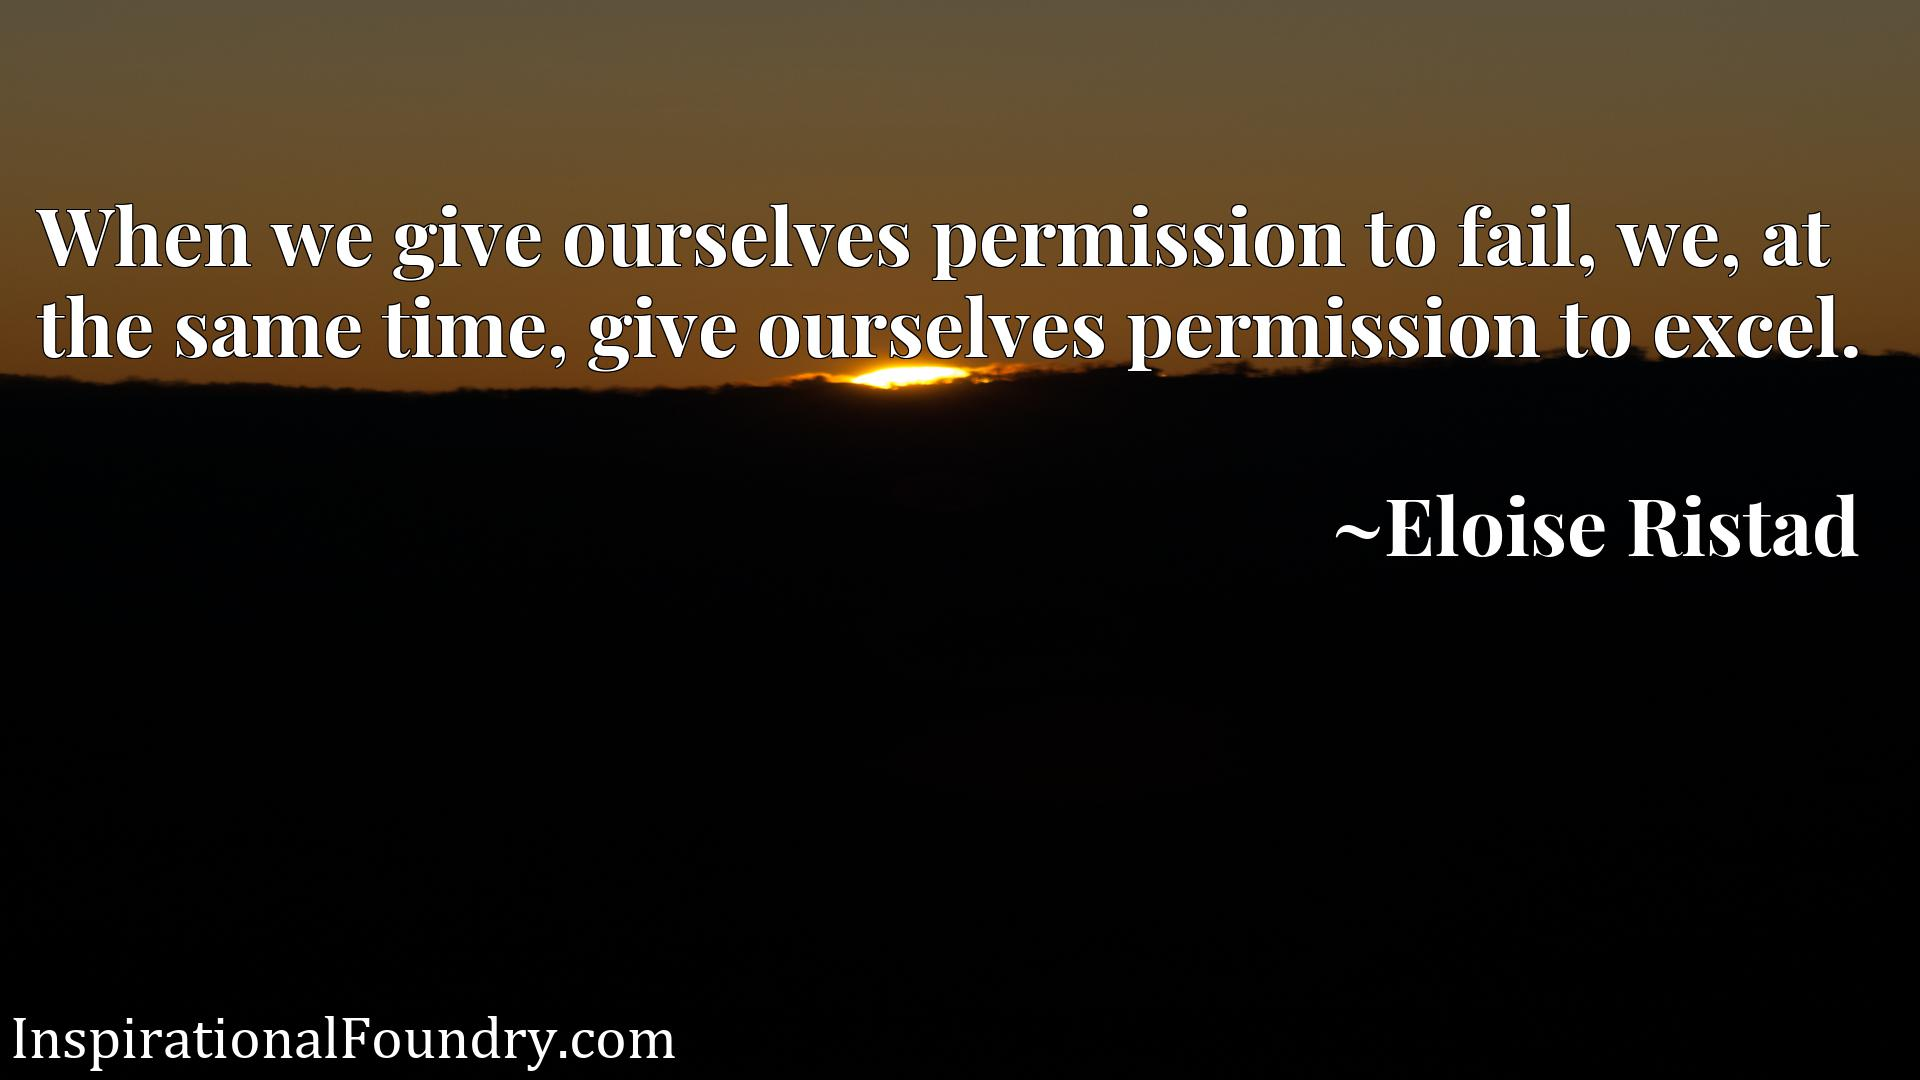 When we give ourselves permission to fail, we, at the same time, give ourselves permission to excel.